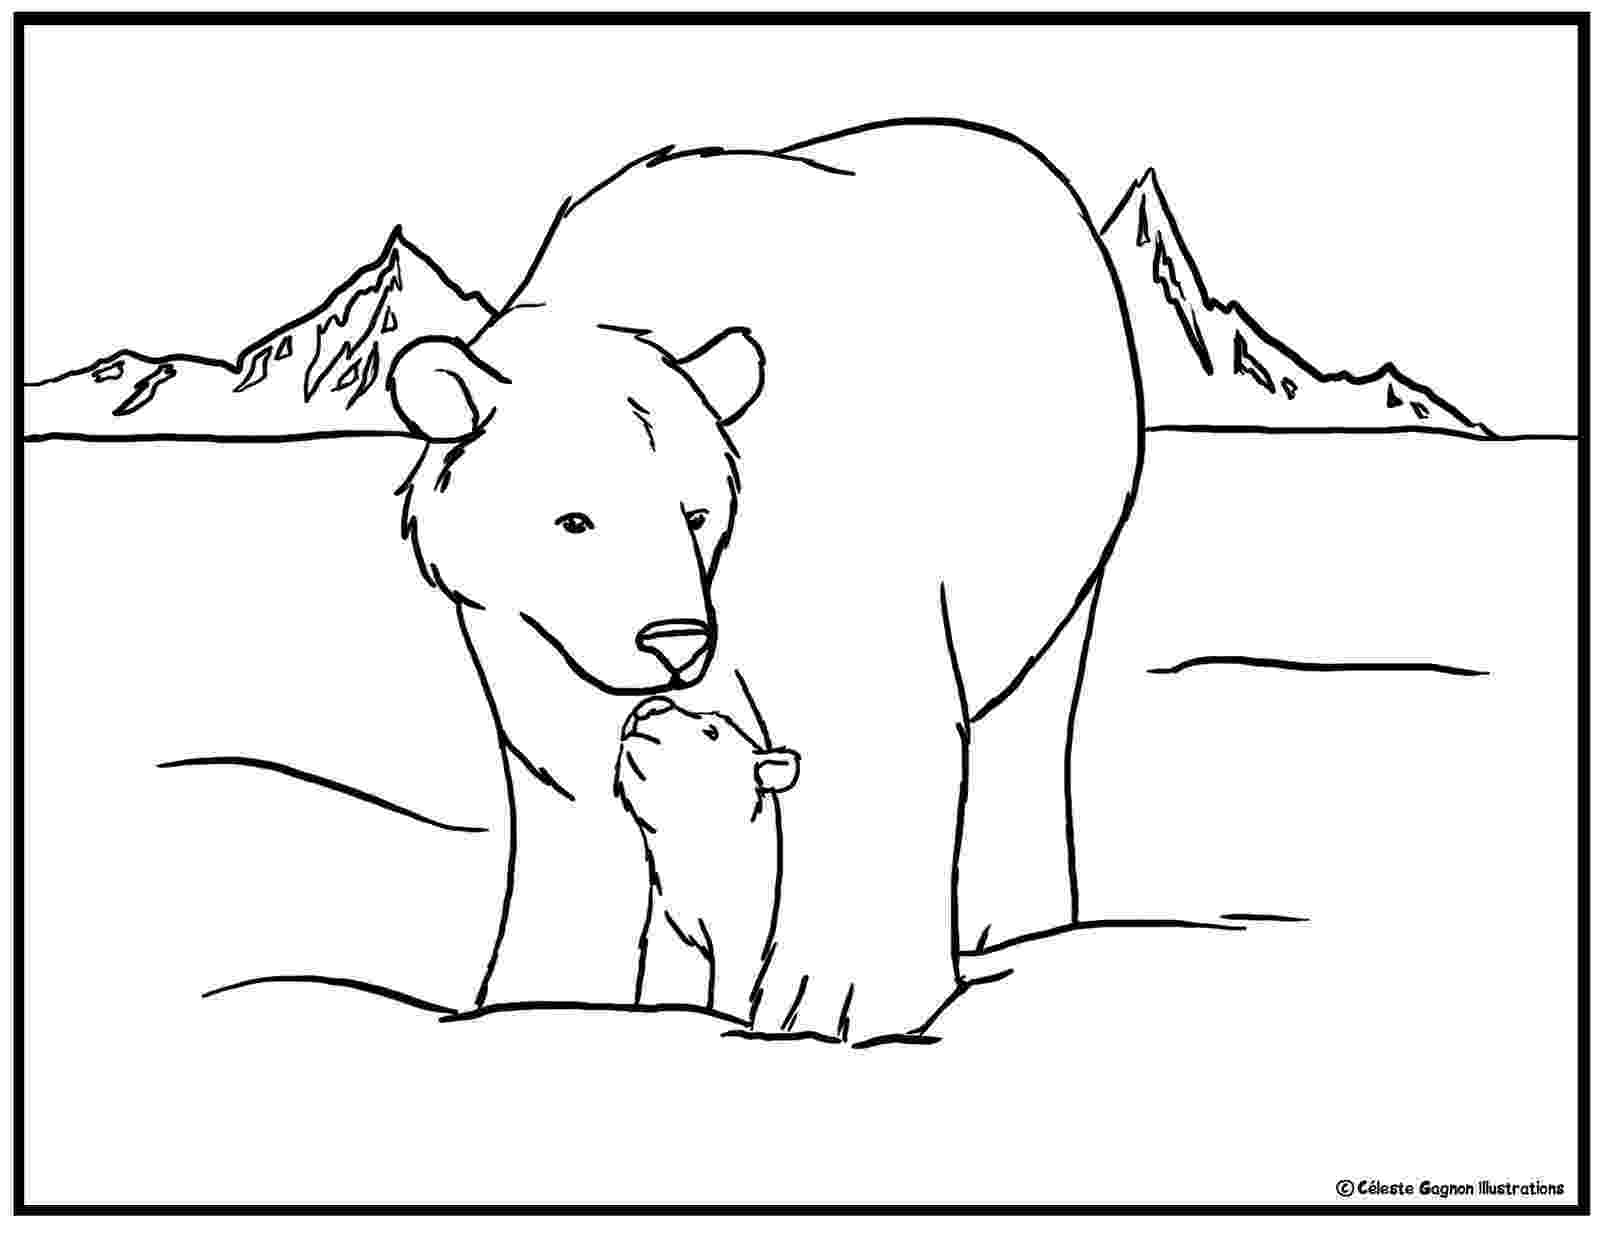 polar bear pictures to colour 7 best free car coloring pages images on pinterest to colour pictures bear polar